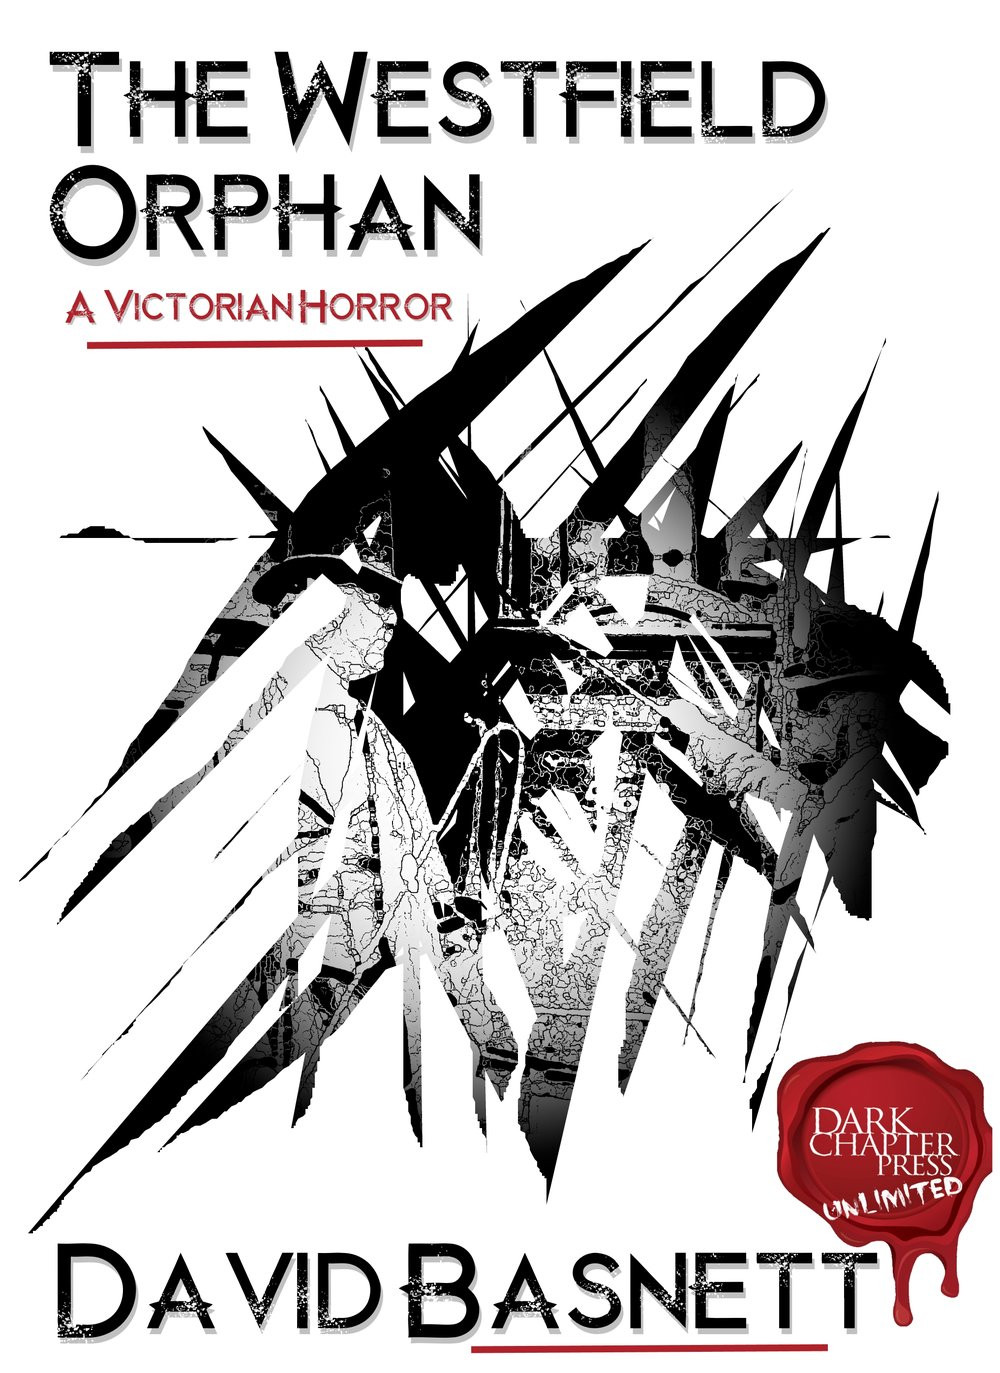 The Westfield Orphan brings David Basnett's epic De Omori series to Victorian London in a truly macabre tale.